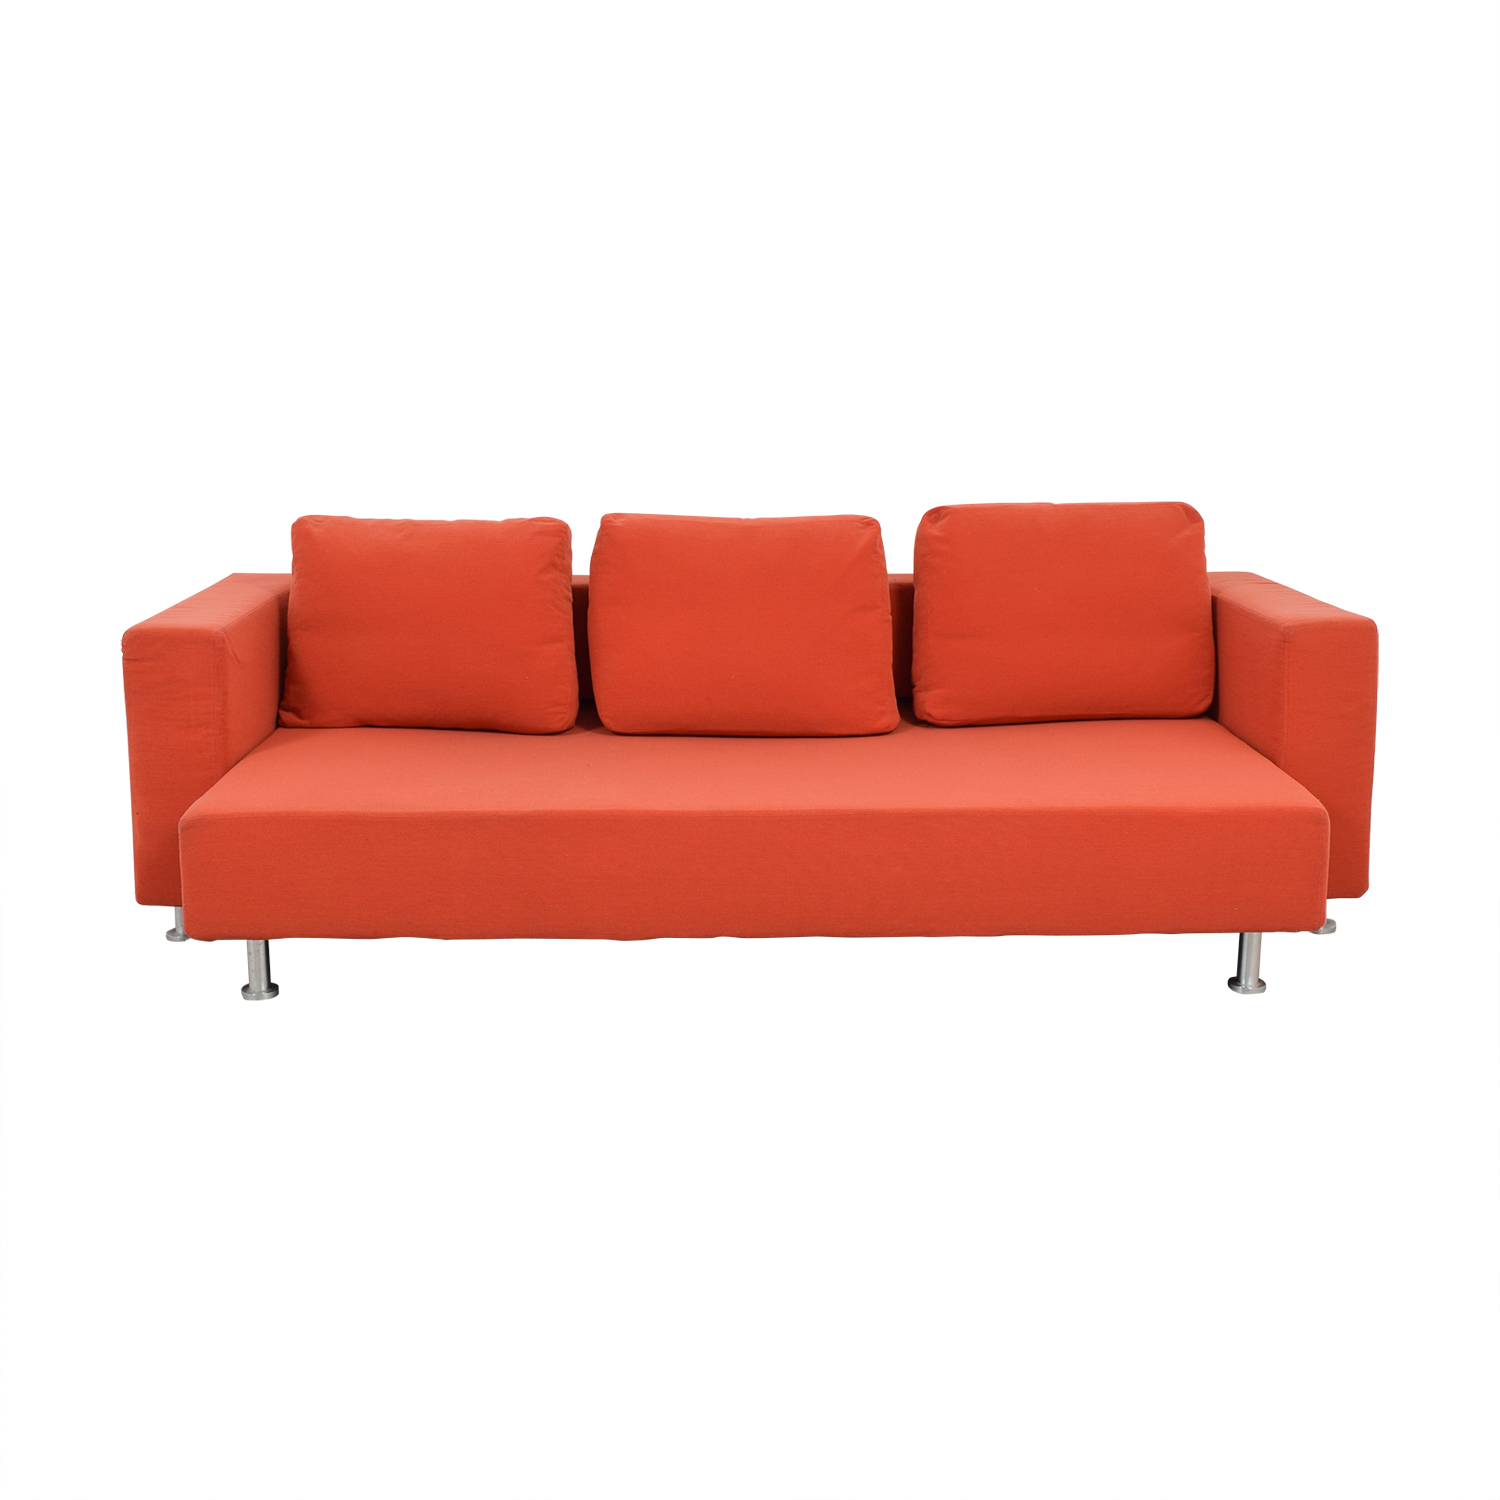 Ligne Roset Ligne Roset Orange Sleeper Sofa used